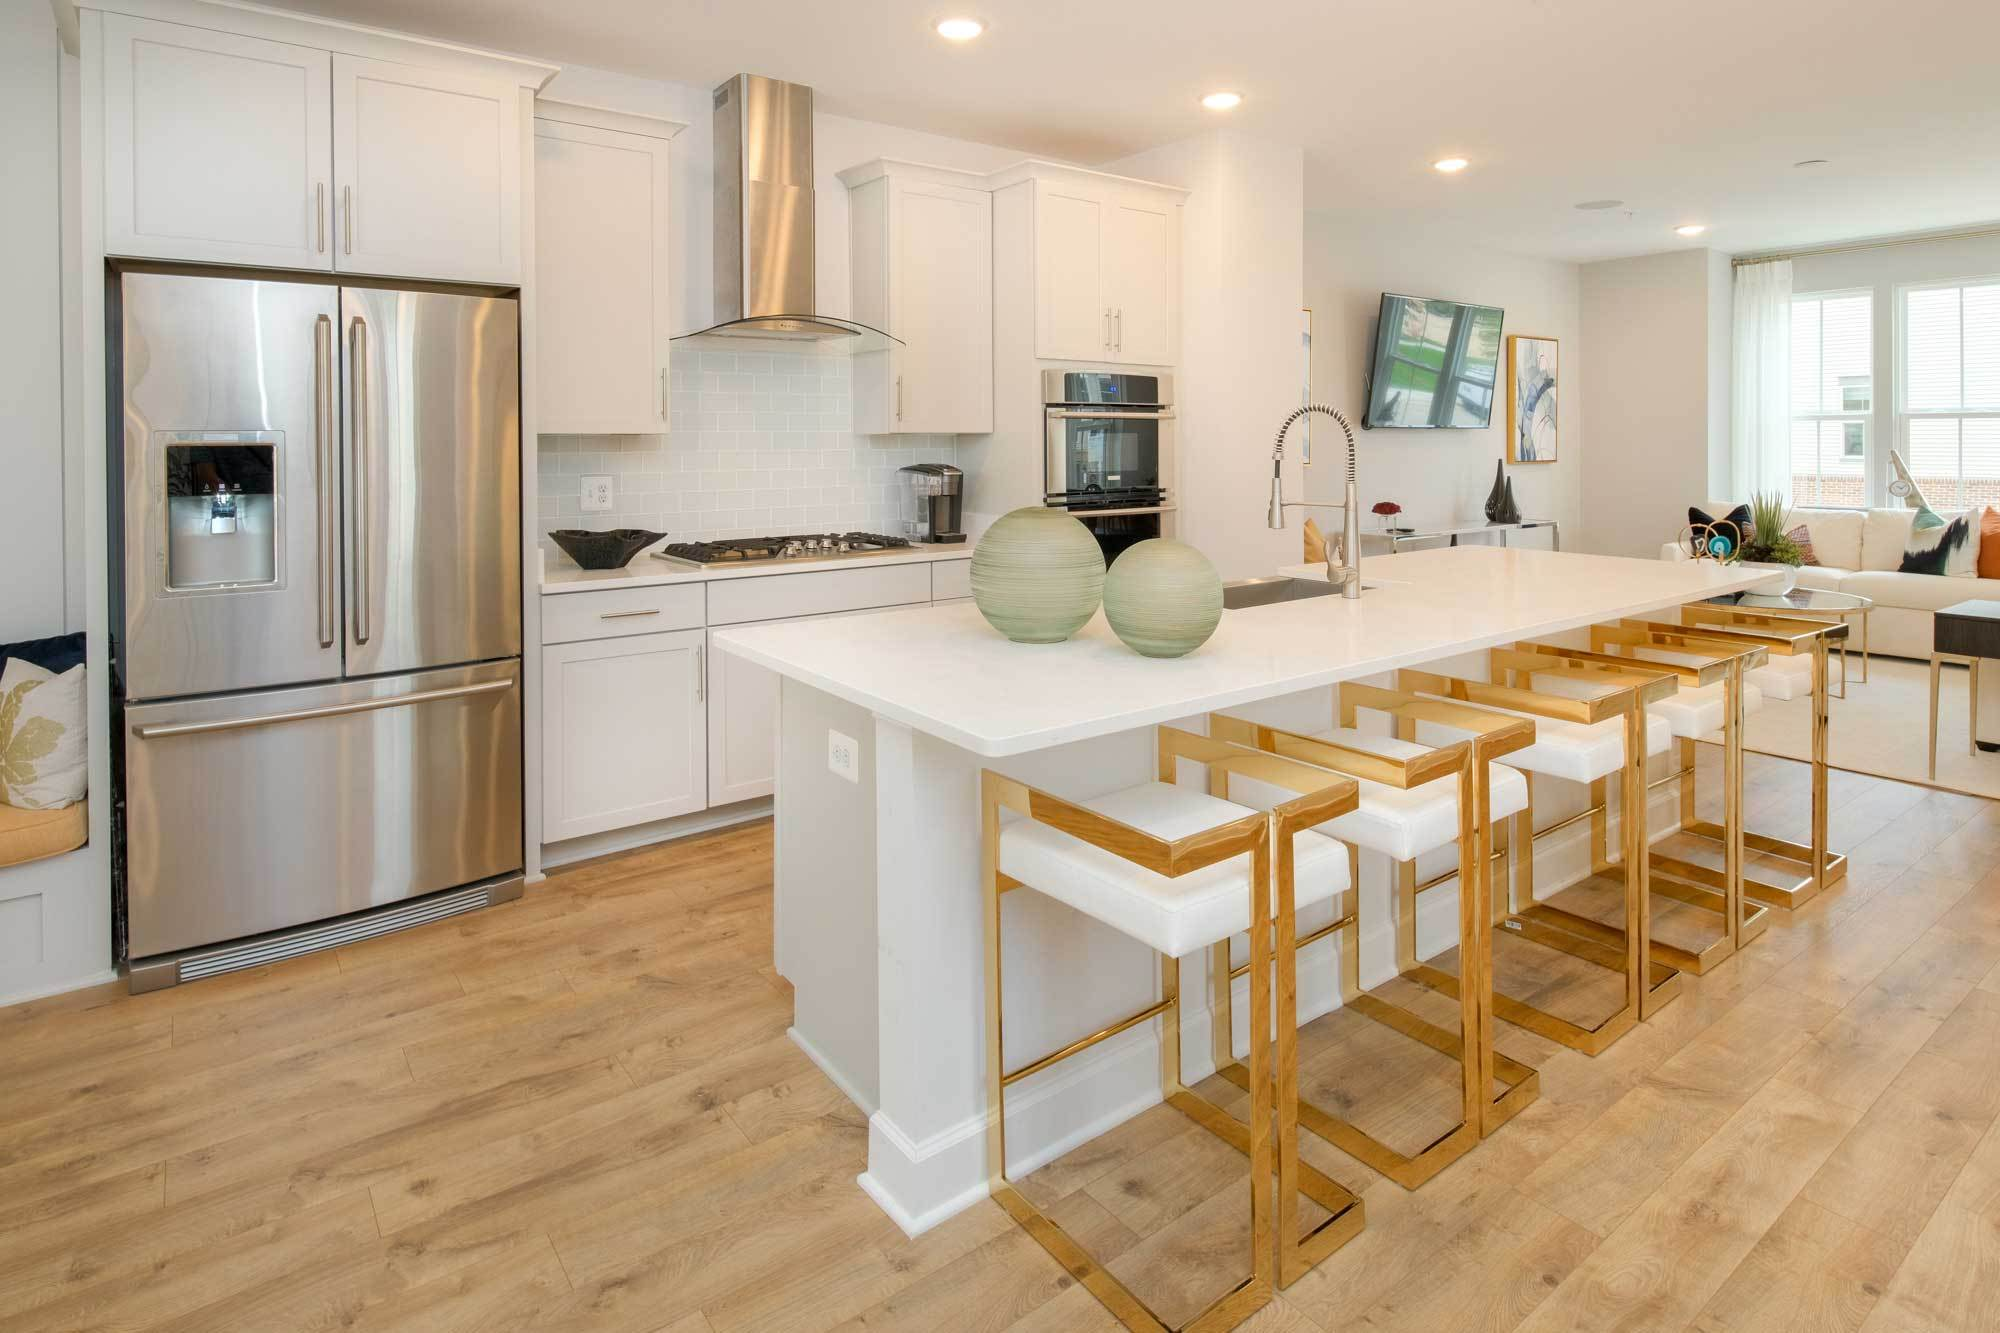 Kitchen featured in the Jenkins By Stanley Martin Homes in Washington, MD